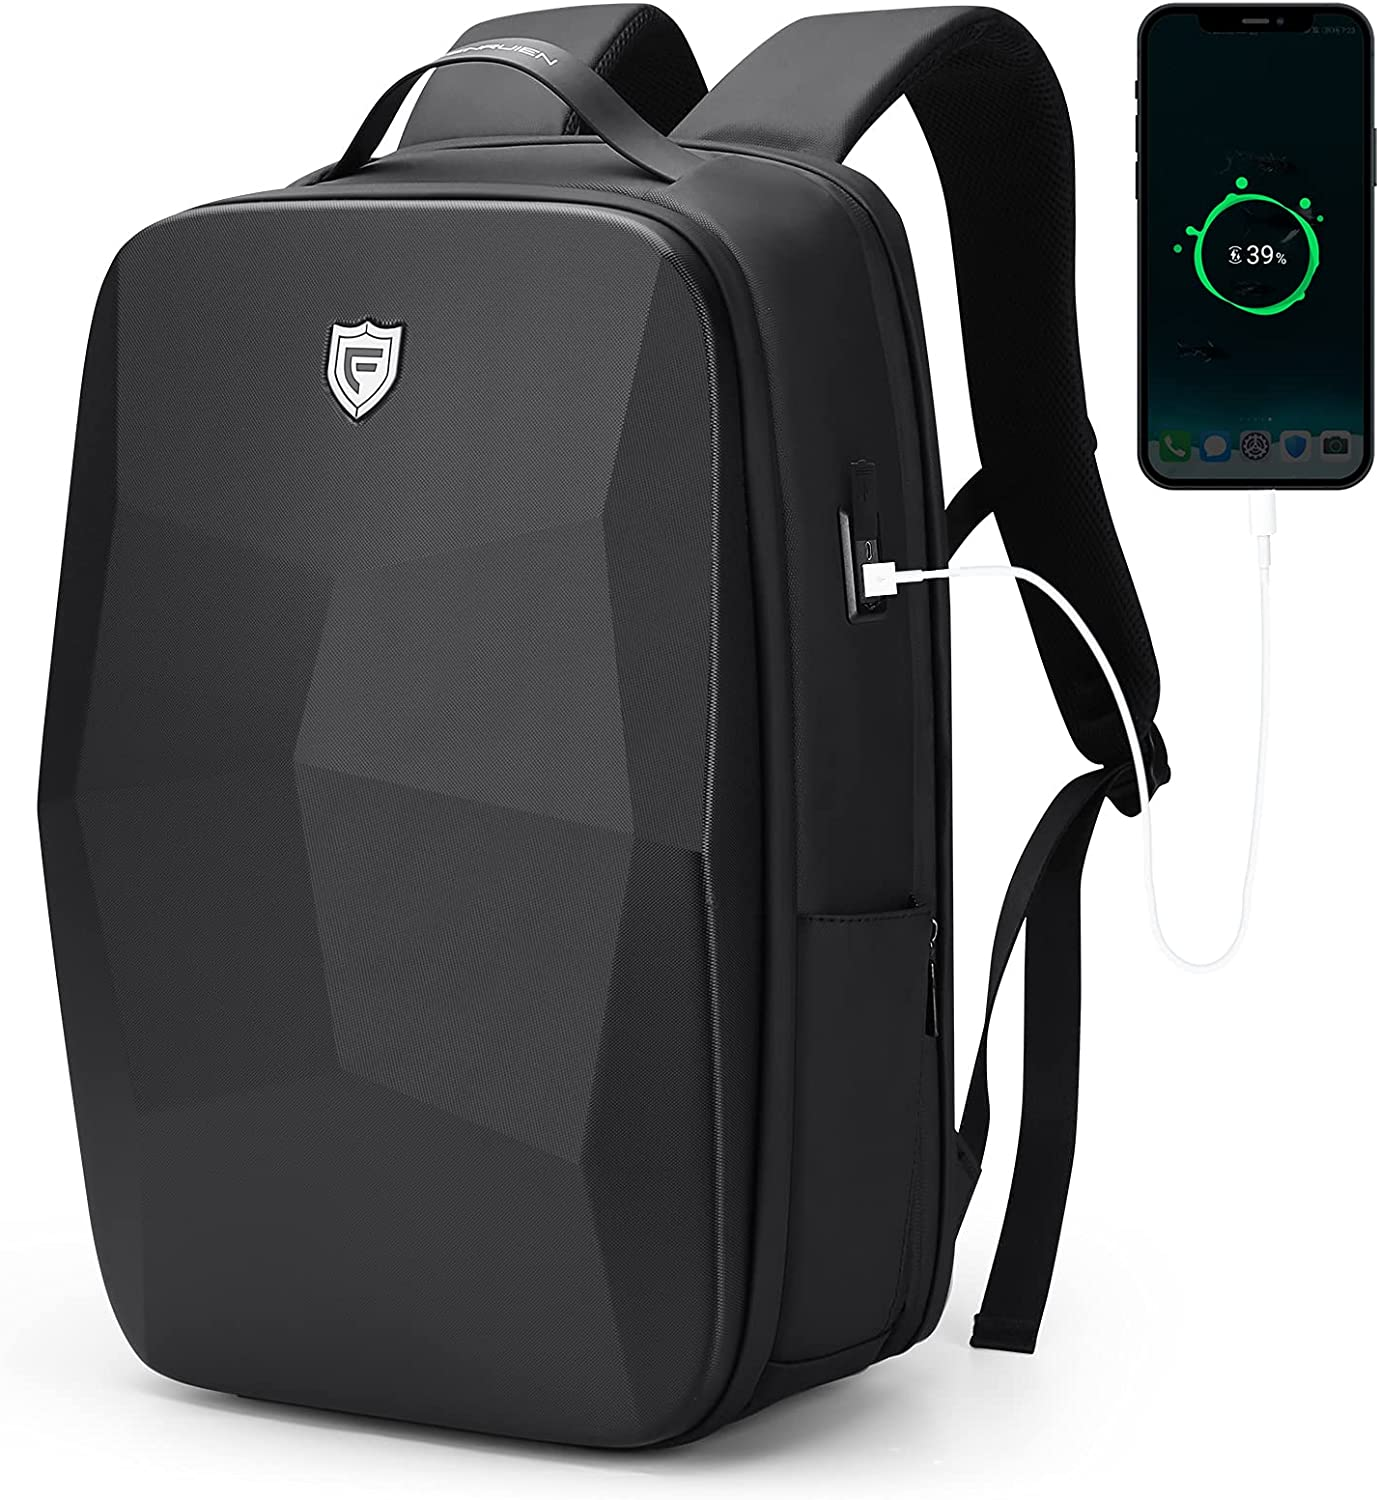 FENRUIEN Hard Shell Backpack 17.3 Inch Anti-theft Business Laptop Backpack for Men with TSA LockUSB Charging Port for College Trip Work Black